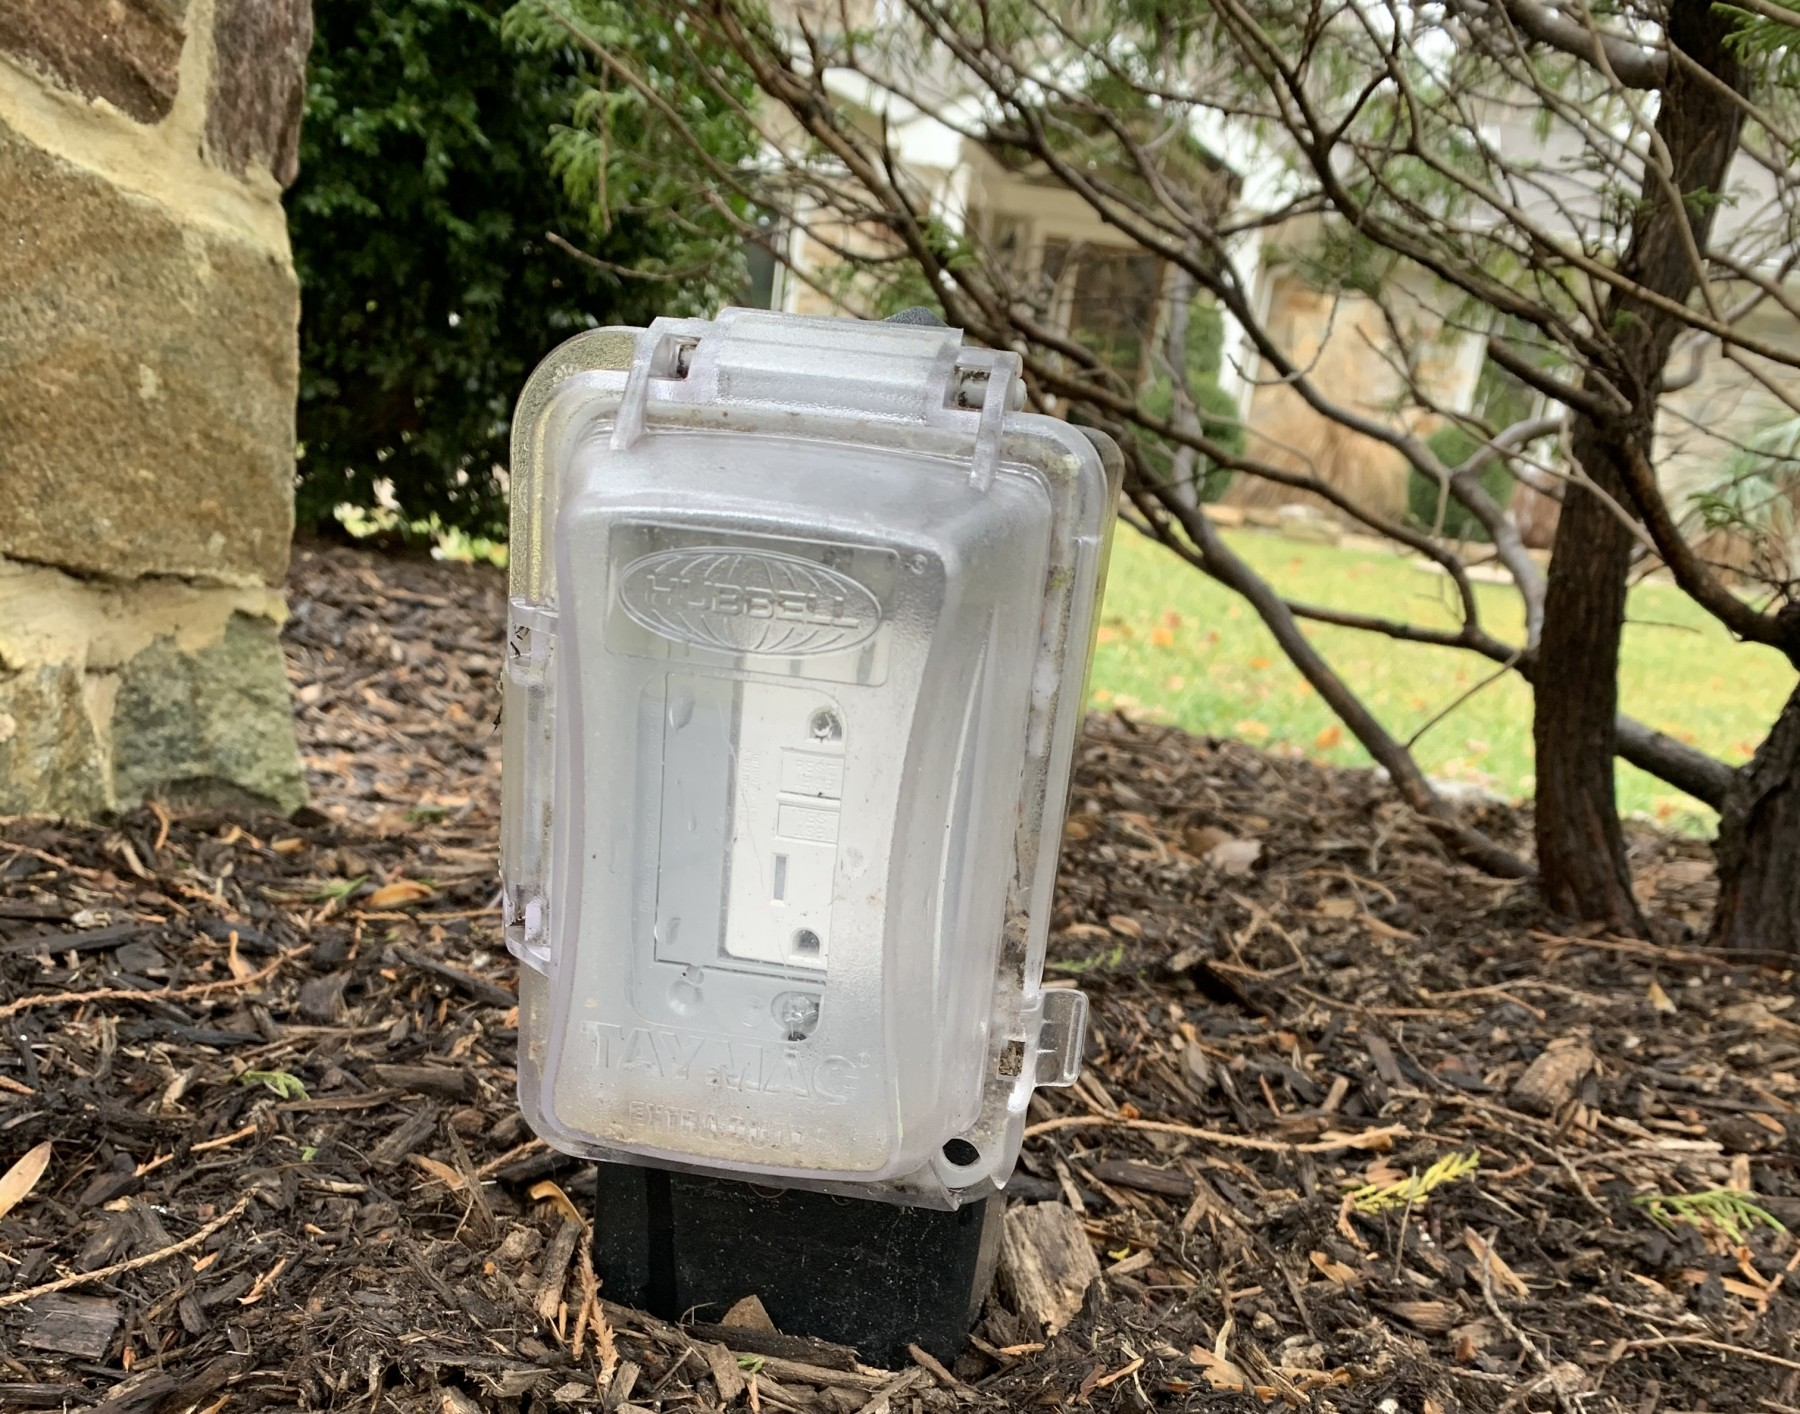 outdoor outlet - Tim Kyle Electric